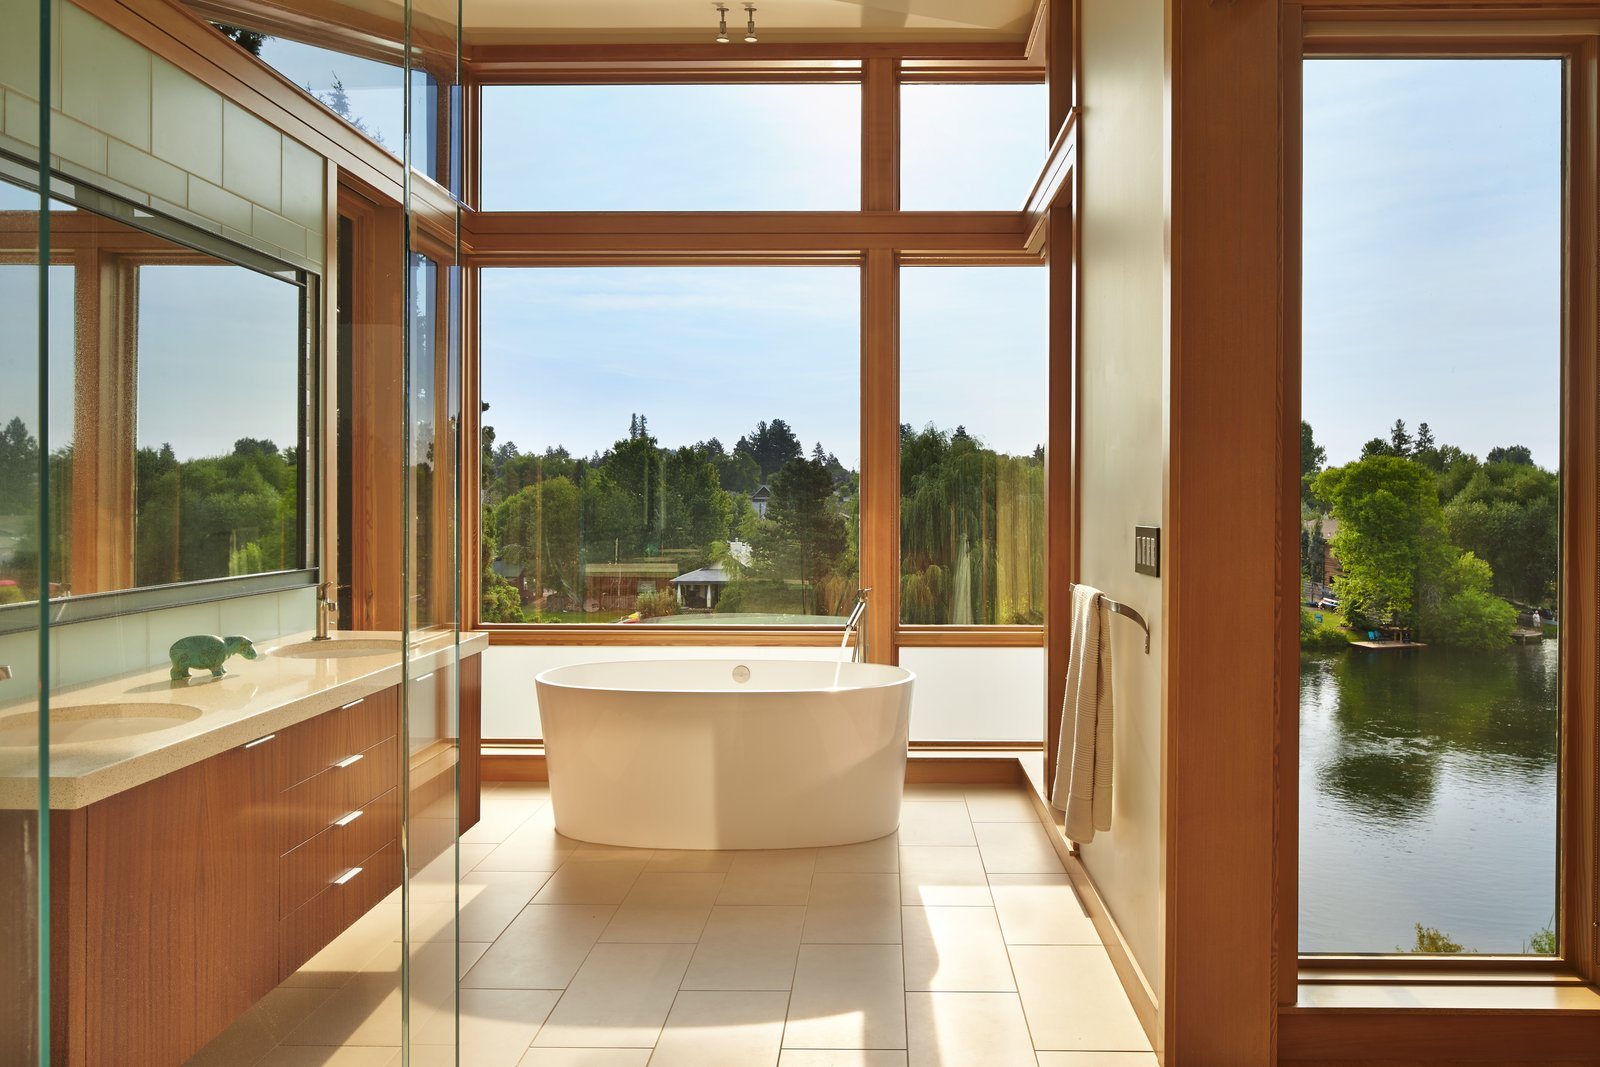 Bath, Glass Tile, Ceiling, Porcelain Tile, Full, Freestanding, Undermount, One Piece, and Engineered Quartz Master Bath with freestanding tub overlooking Deschutes River  Best Bath Undermount Full Engineered Quartz Glass Tile Photos from DESCHUTES House